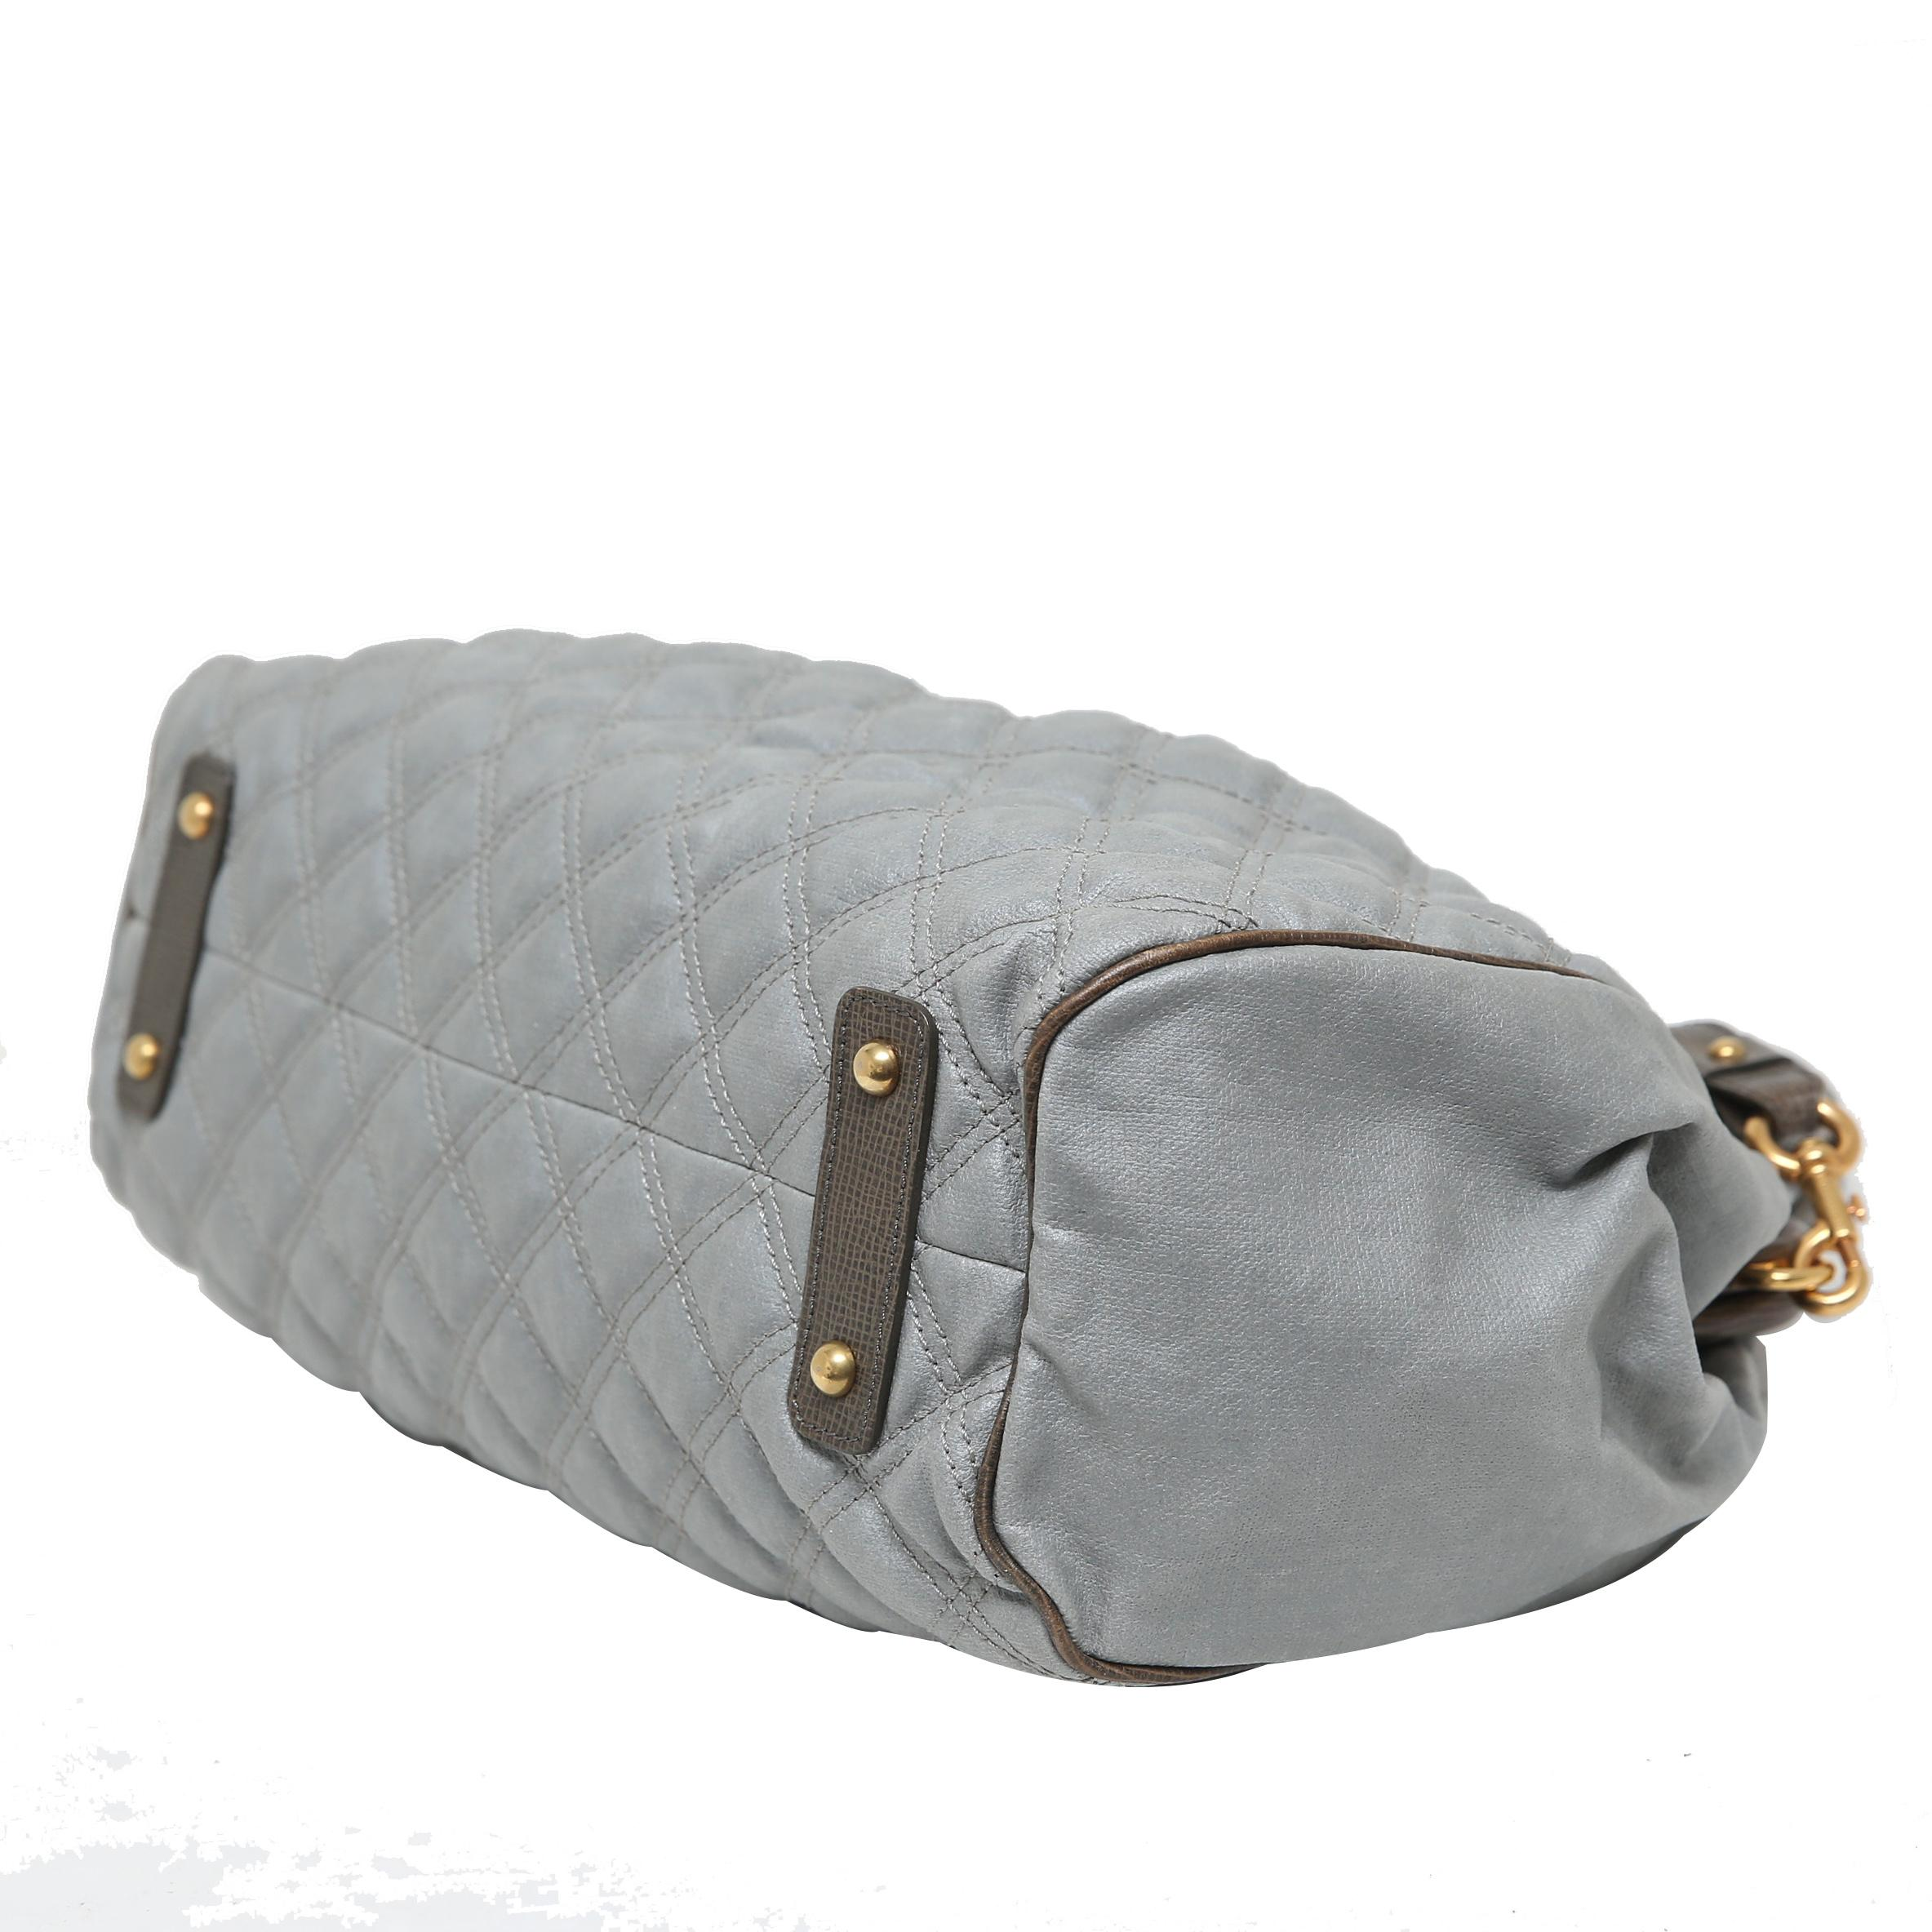 574a30c16a30 Marc Jacobs - Gray Grey Quilted Coated Canvas Stam Satchel Bag - Lyst. View  fullscreen